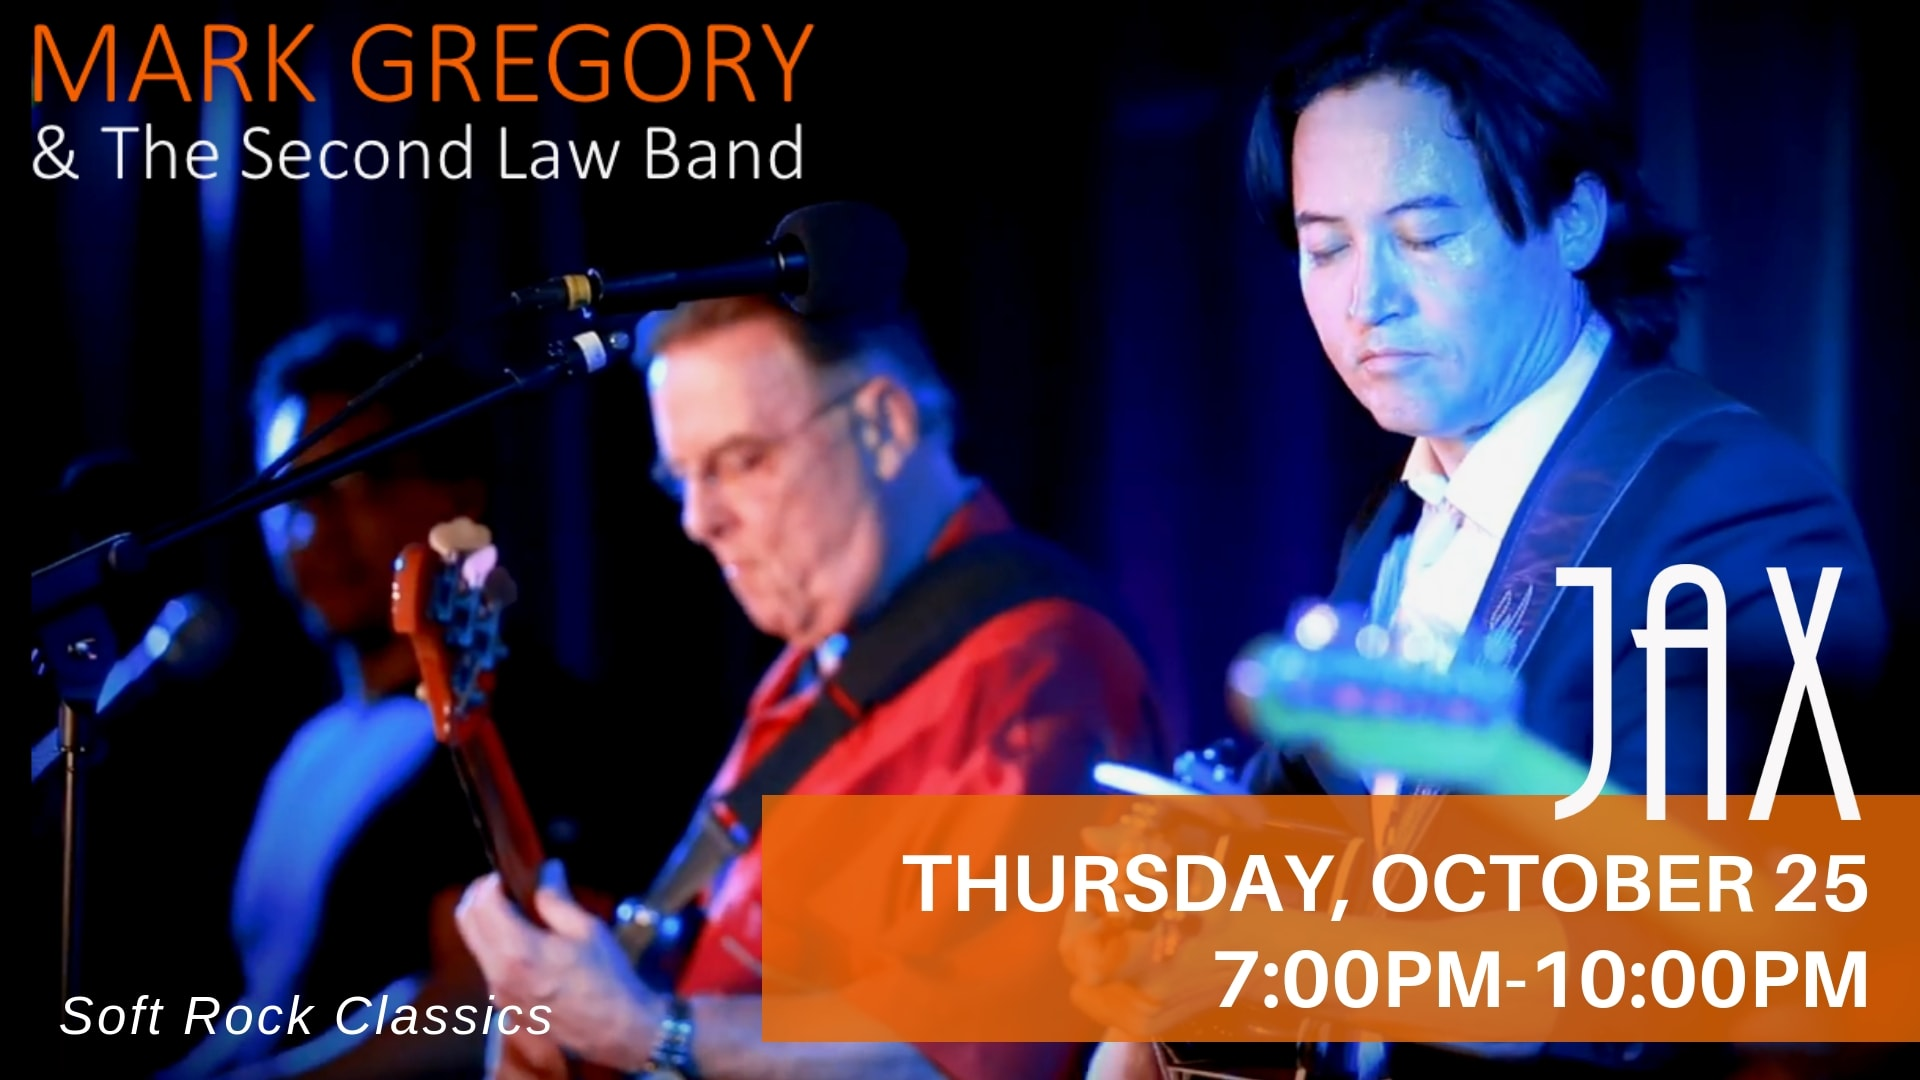 October 25 | MARK GREGORY & THE SECOND LAW BAND